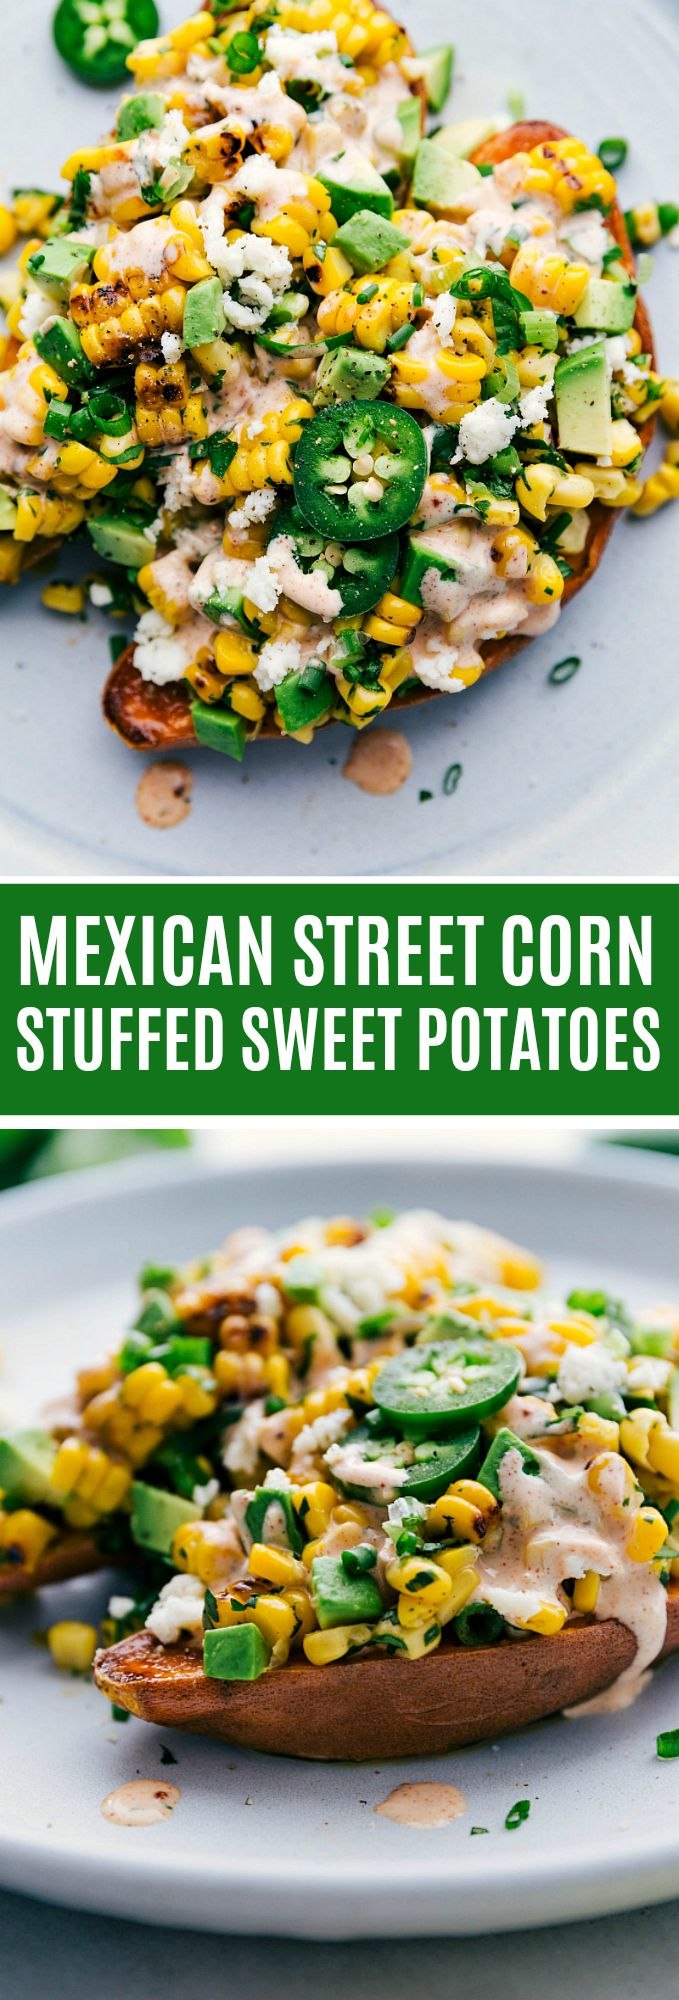 MEXICAN STREET CORN SWEET POTATOES images